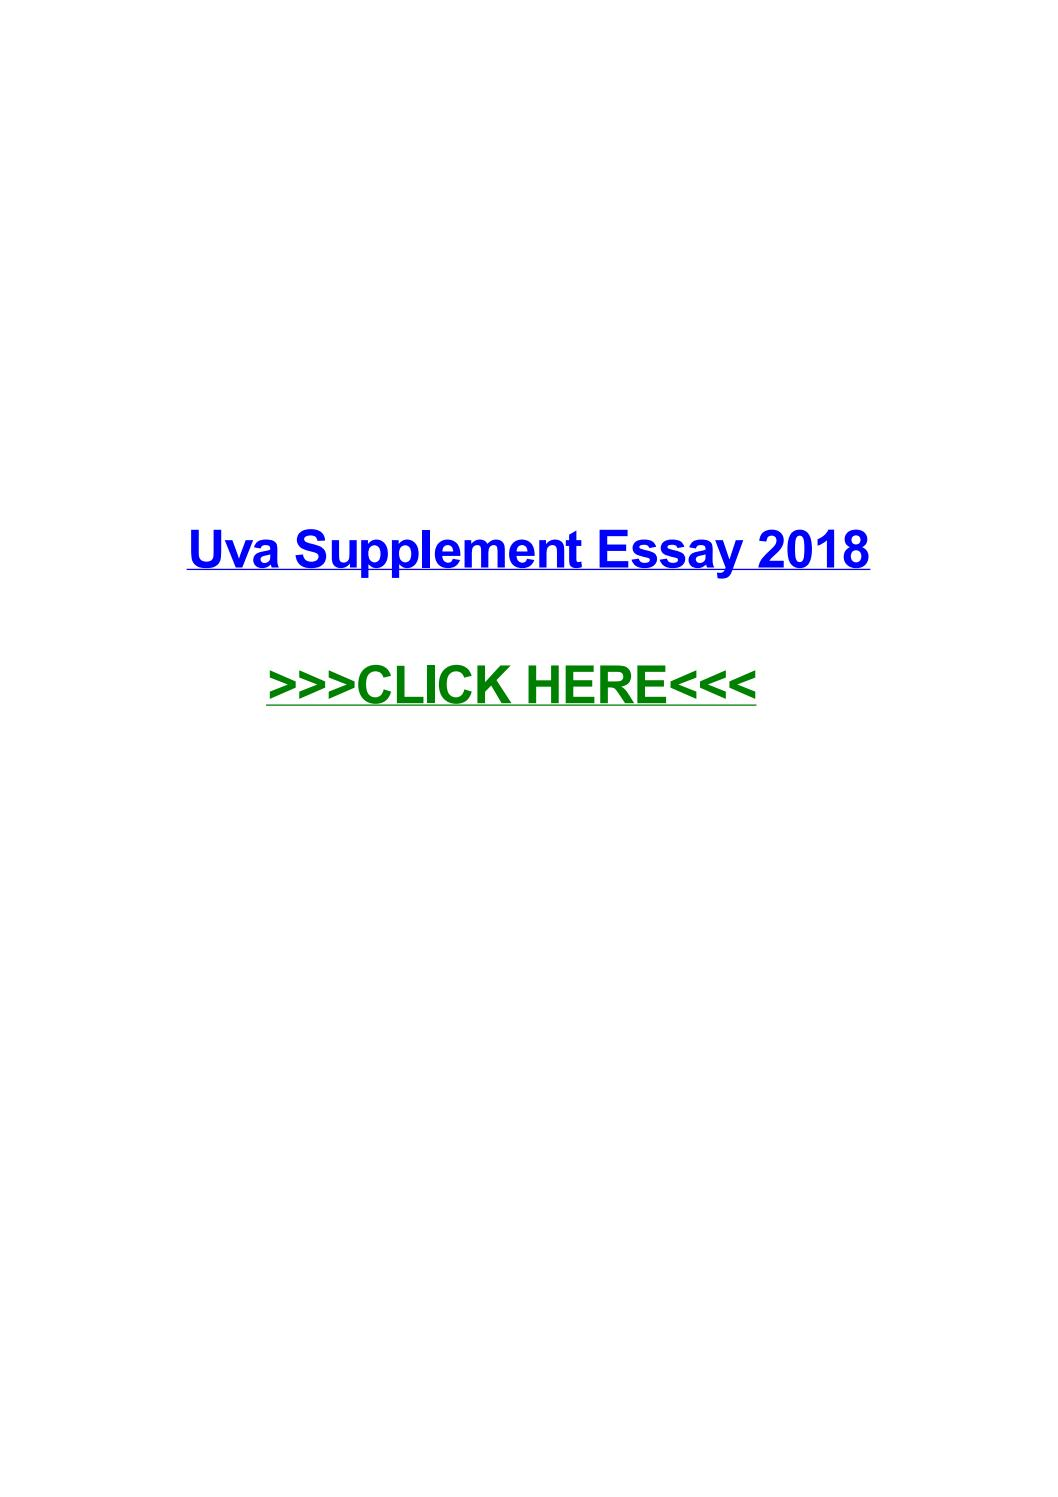 006 Page 1 Essay Example Uva Rare Supplement Tips 2017 2016 Full